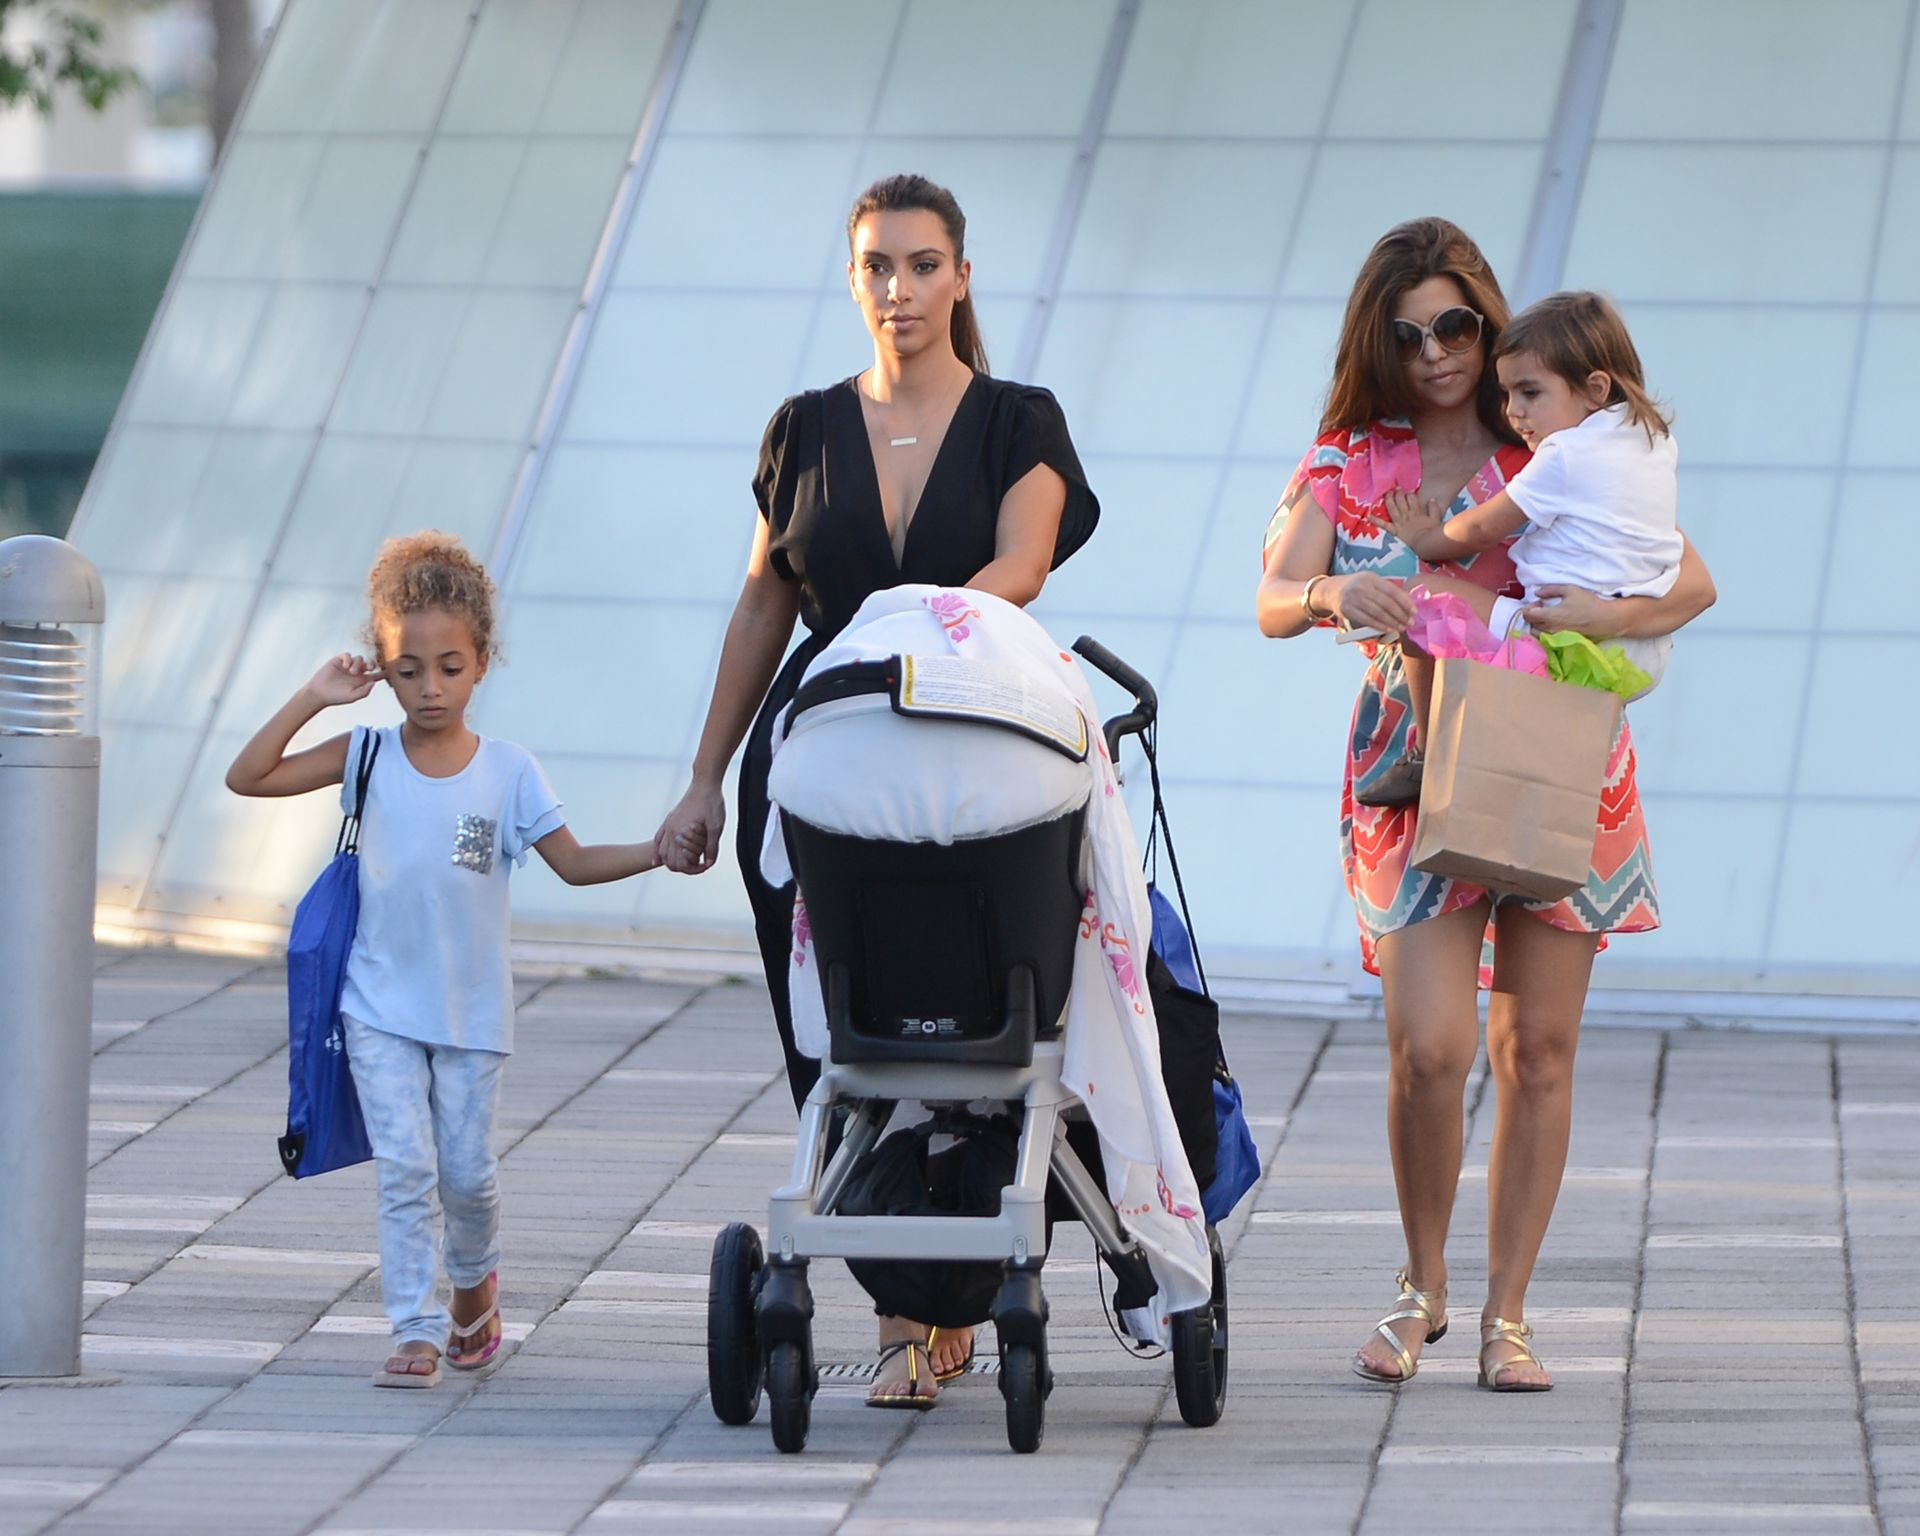 Kim and Kourtney Kardashian with their kids going to the Miami Children's Museum on October 3, 2012 in Miami. | Photo: Getty Images